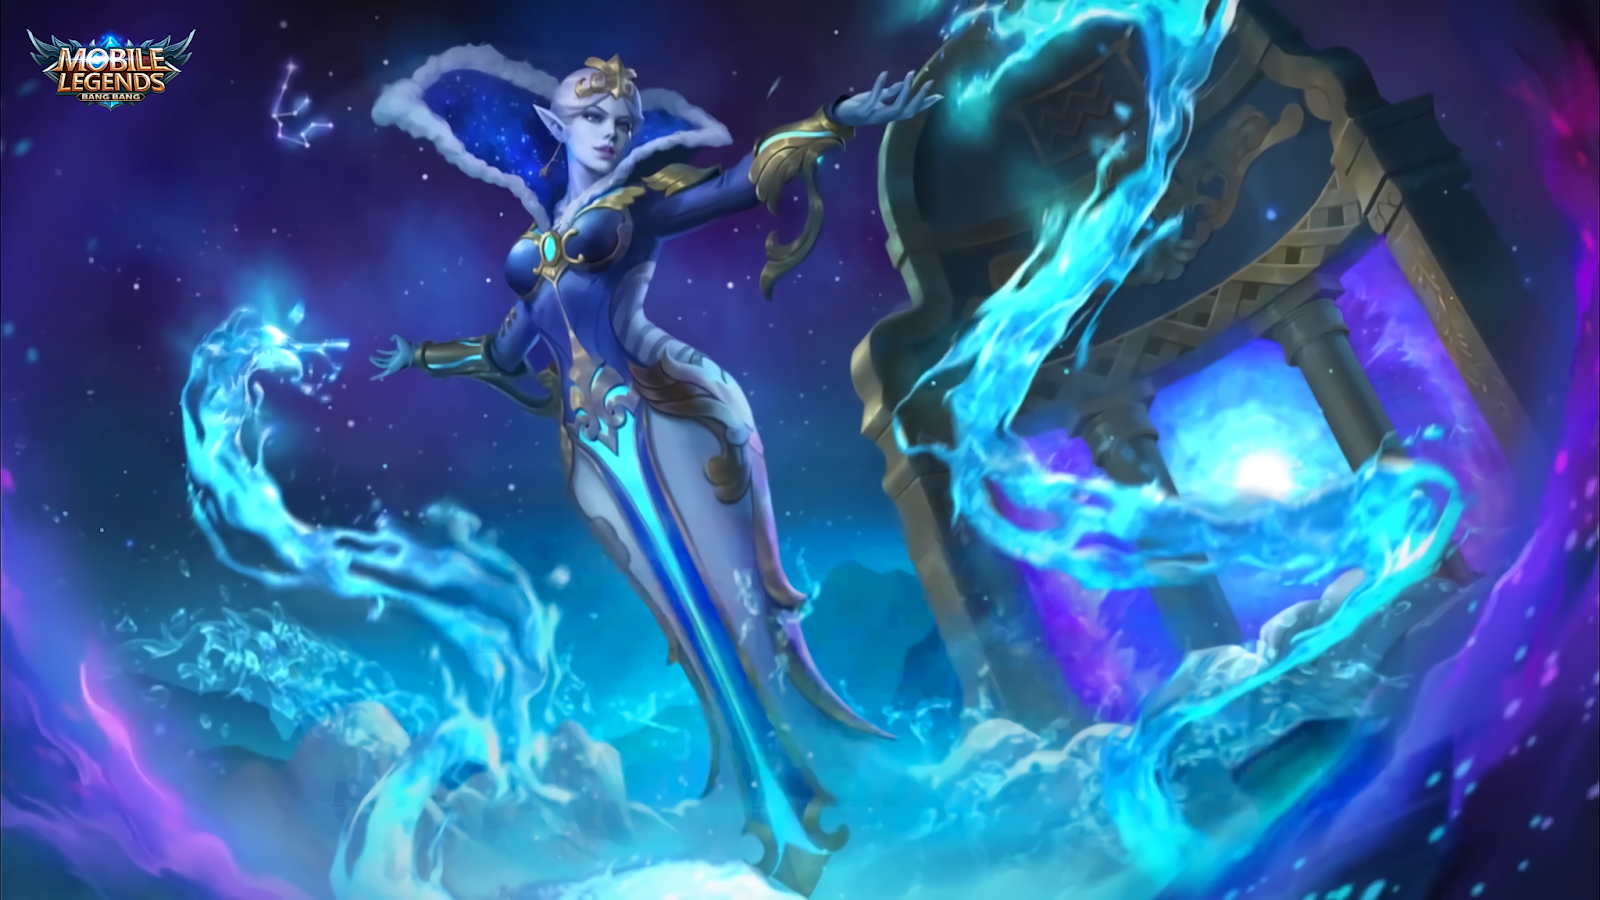 Kumpulan Wallpaper HD Mobile Legends Part V Irumira